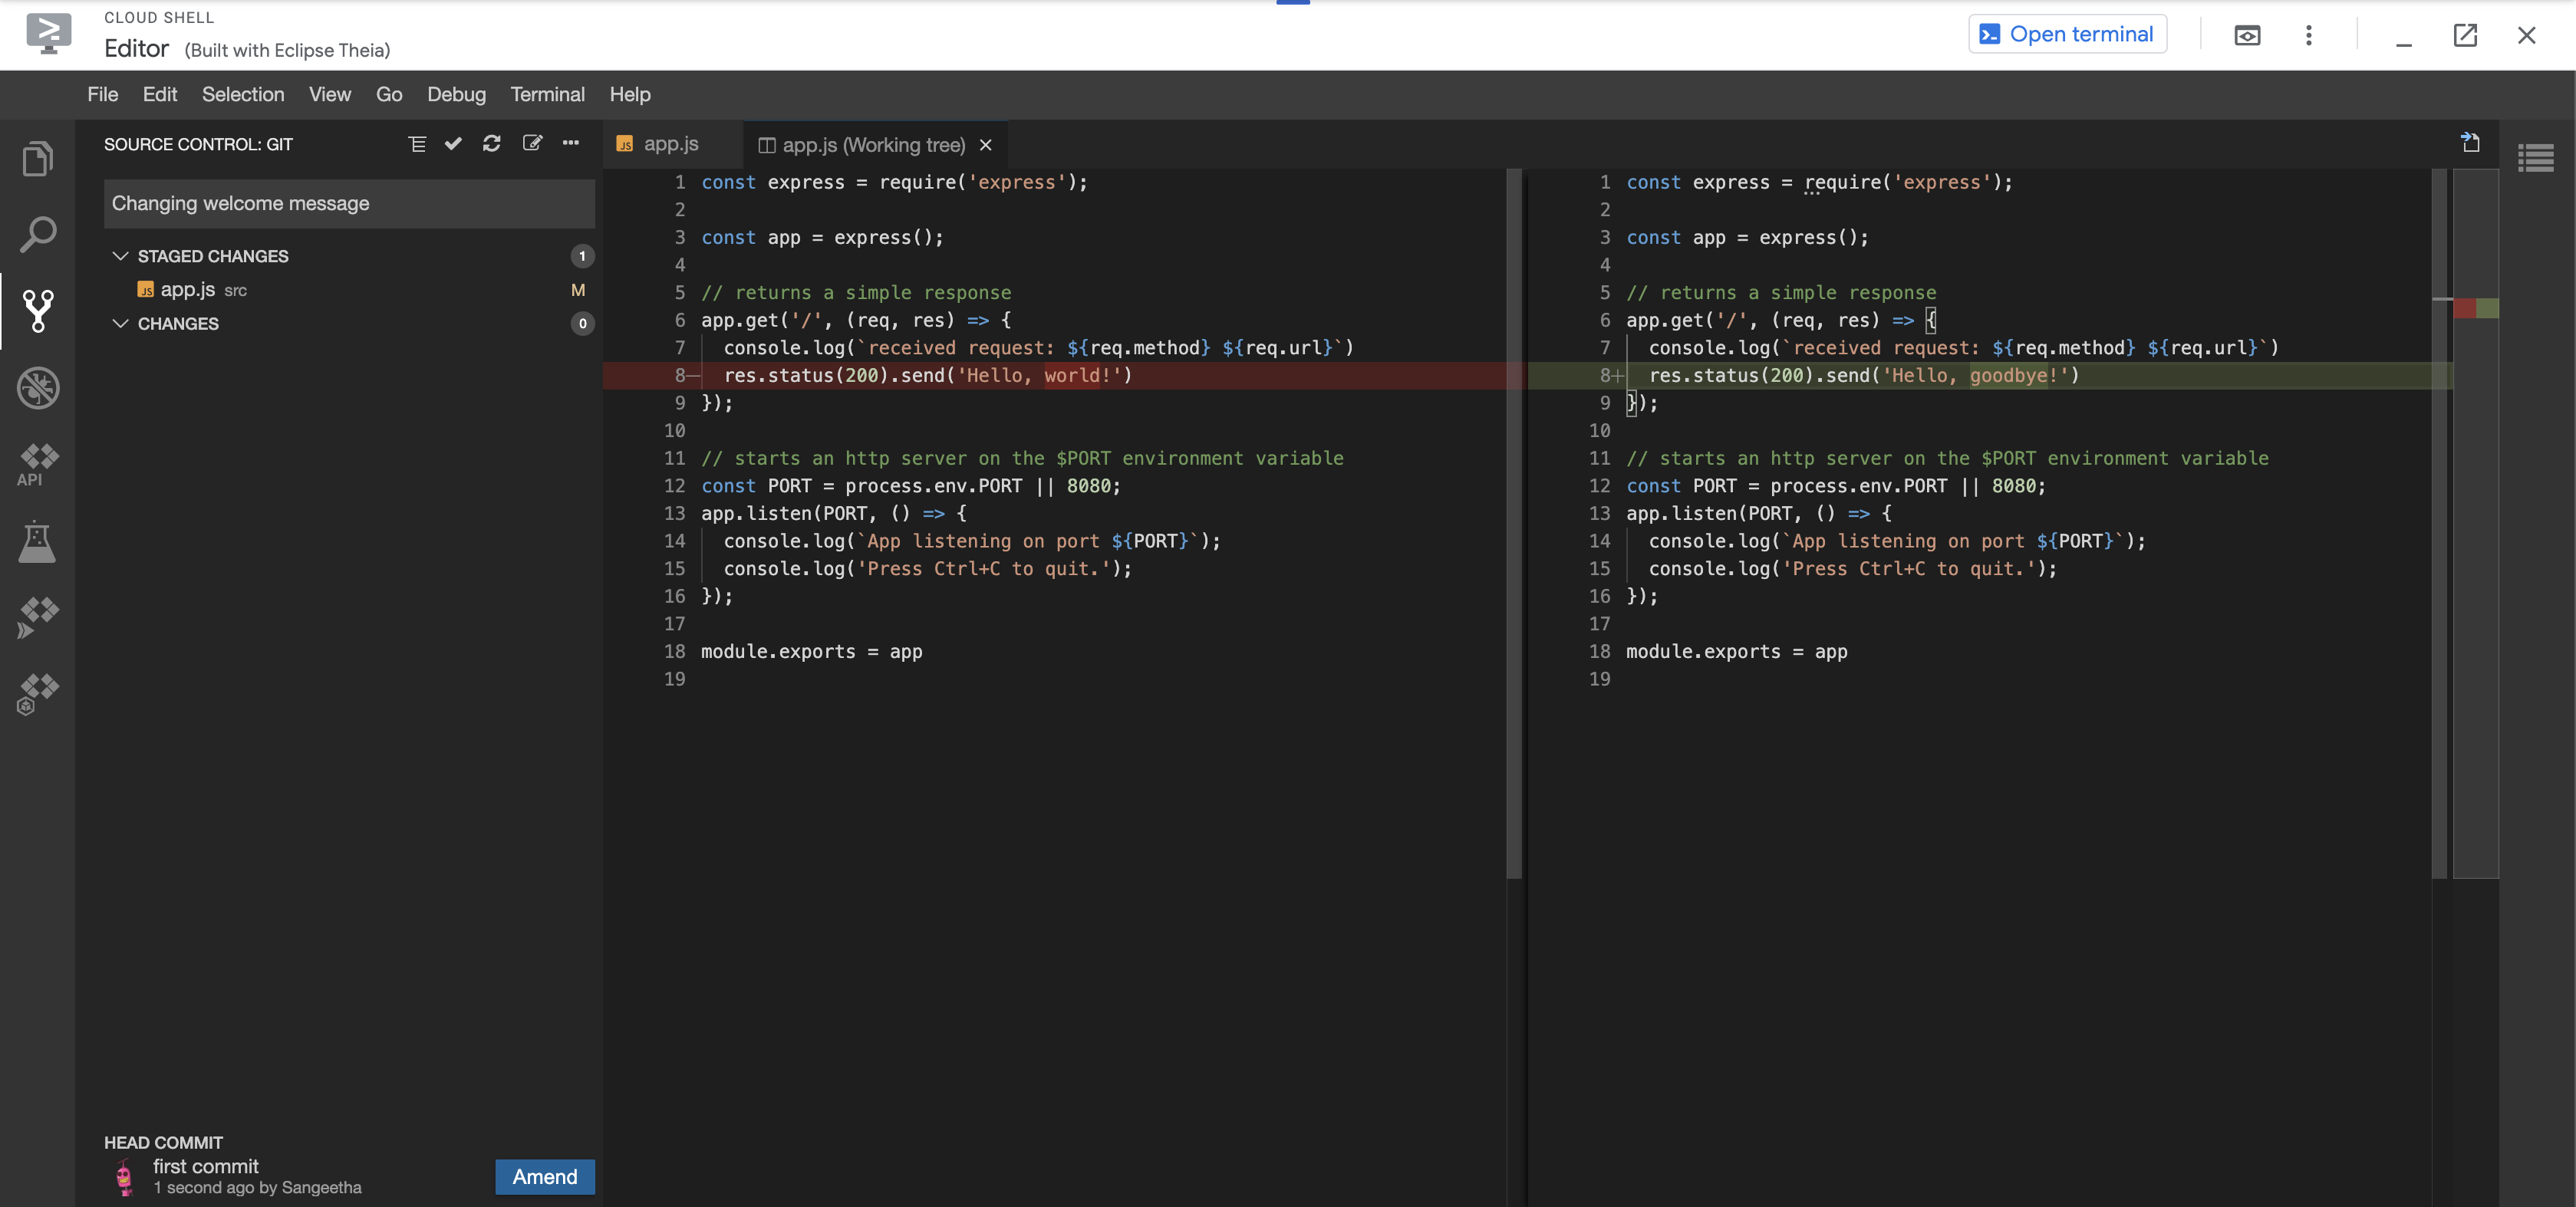 Diff between old app.js and amended app.js with filled in commit message and staged changes visible in the tree view